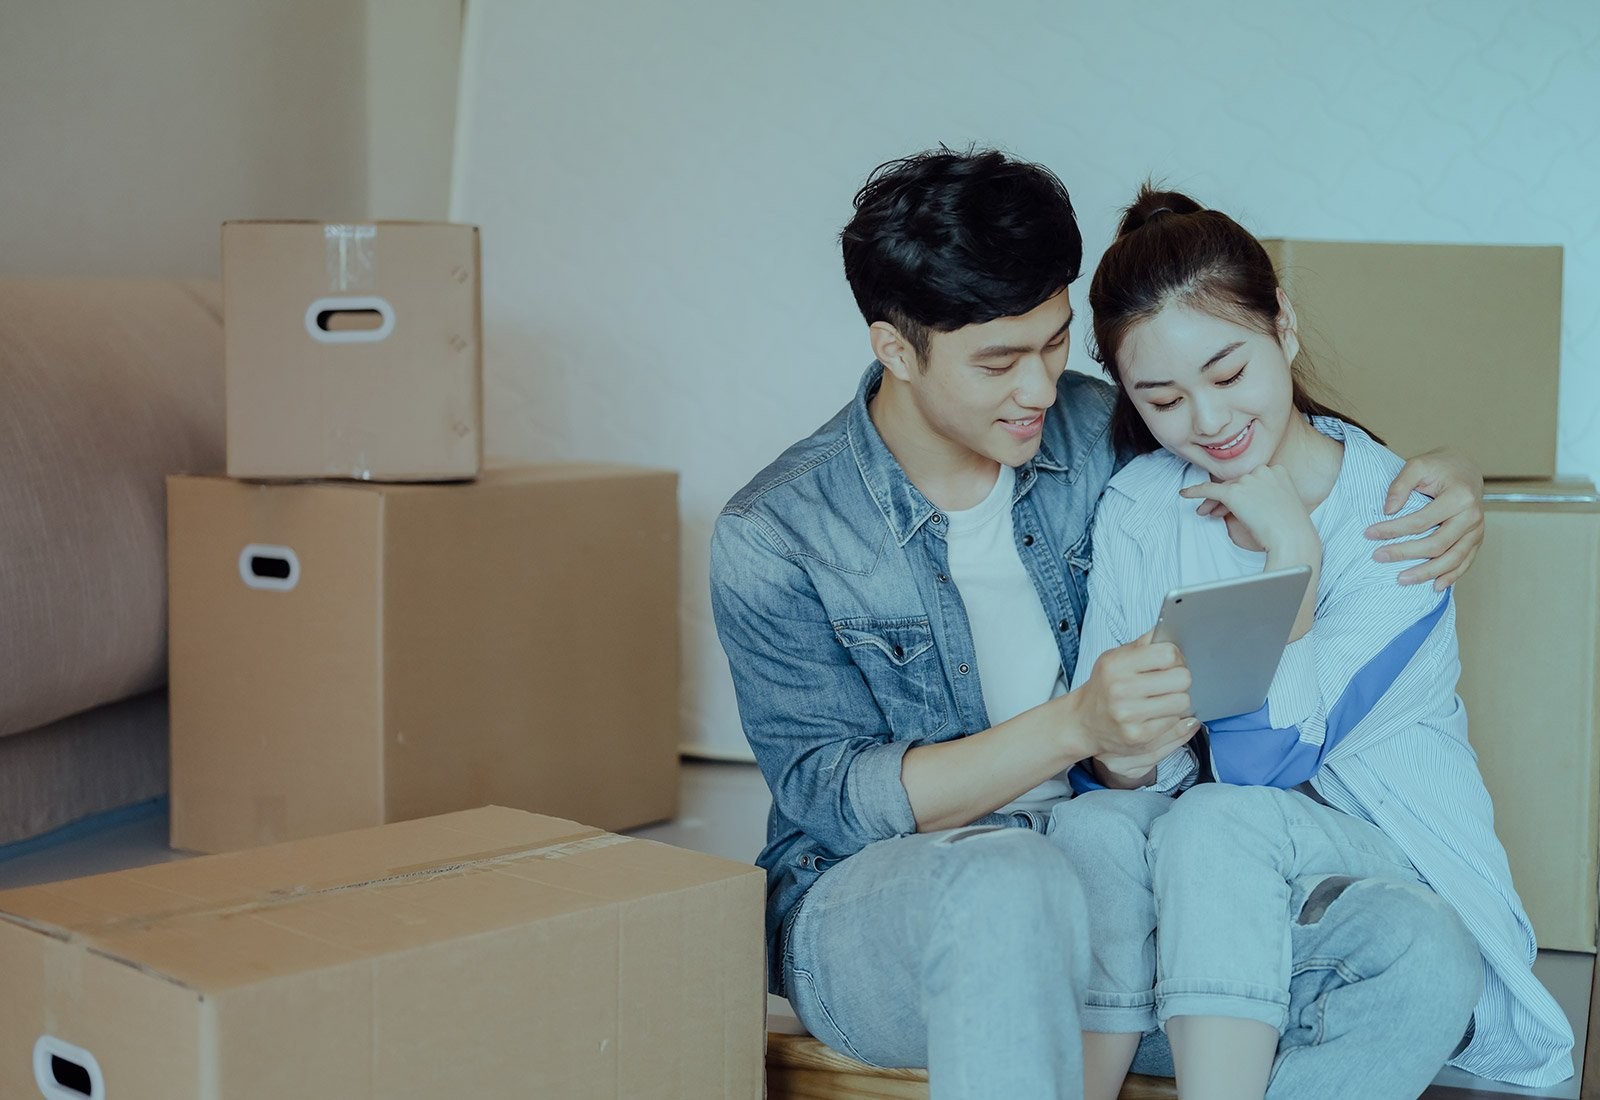 Top tips when choosing a removal company